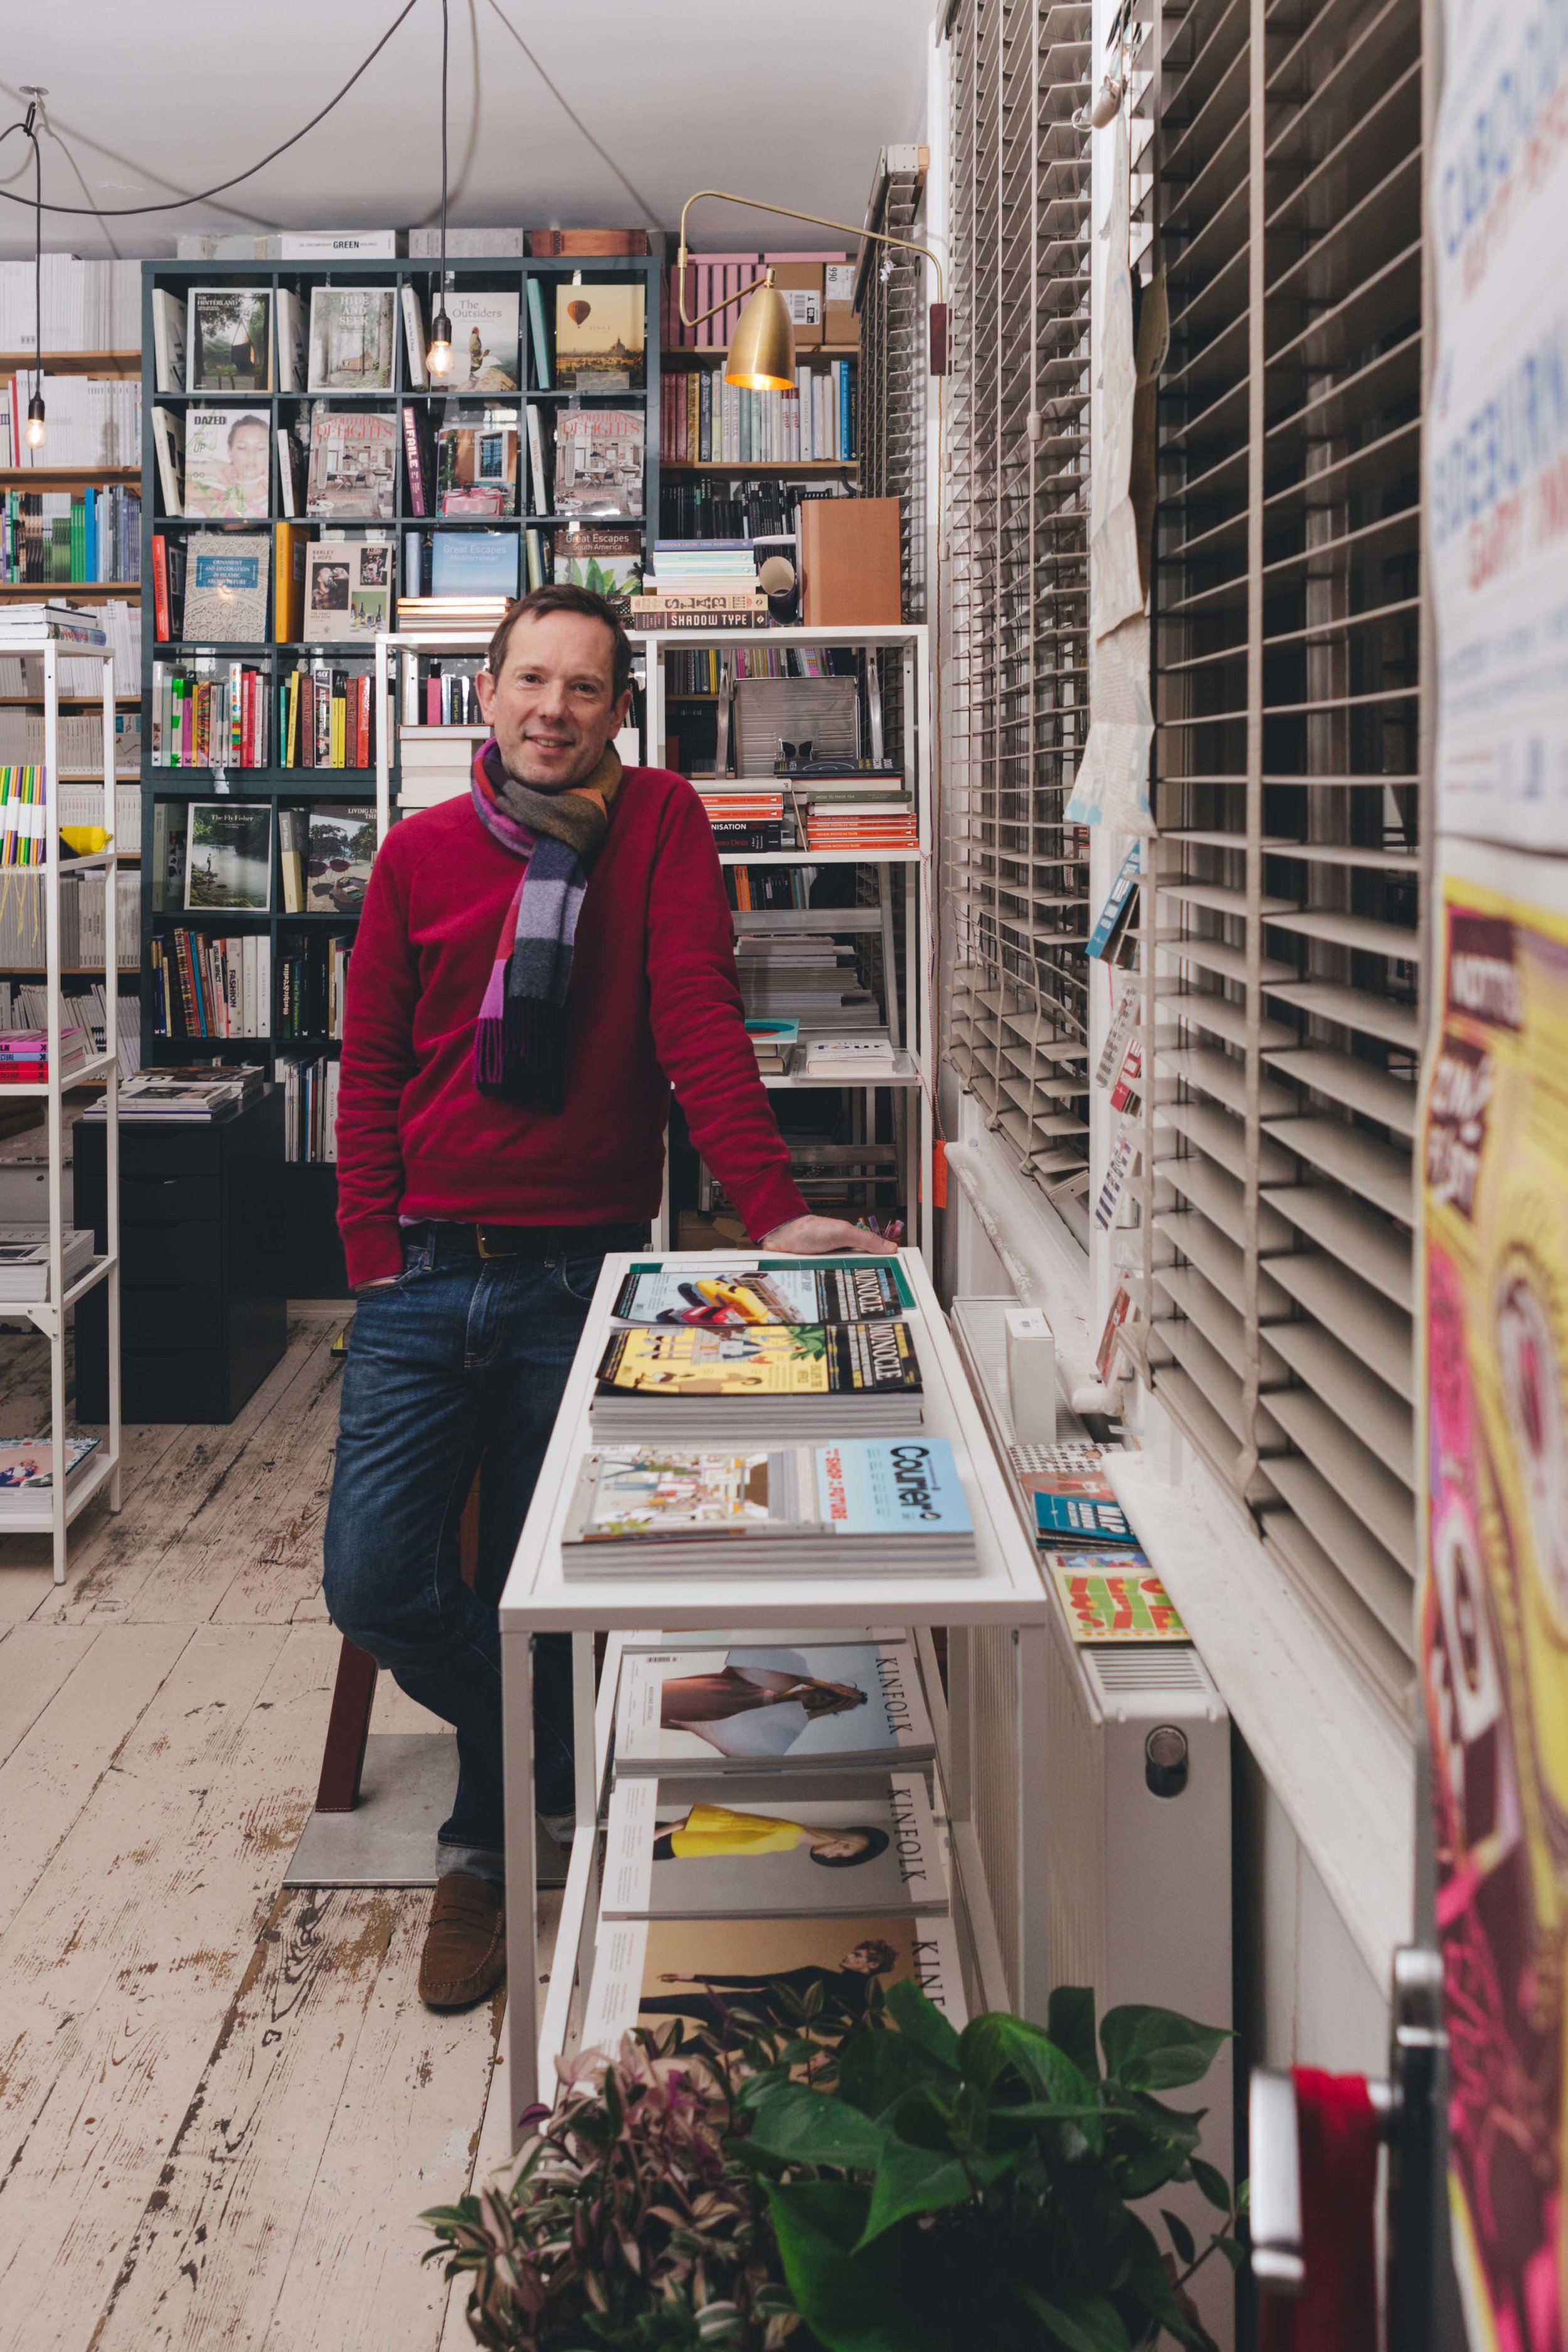 portrait of a man in a book shop with plants in the foreground to the right, blinds also to the right and books in shelves on the walls